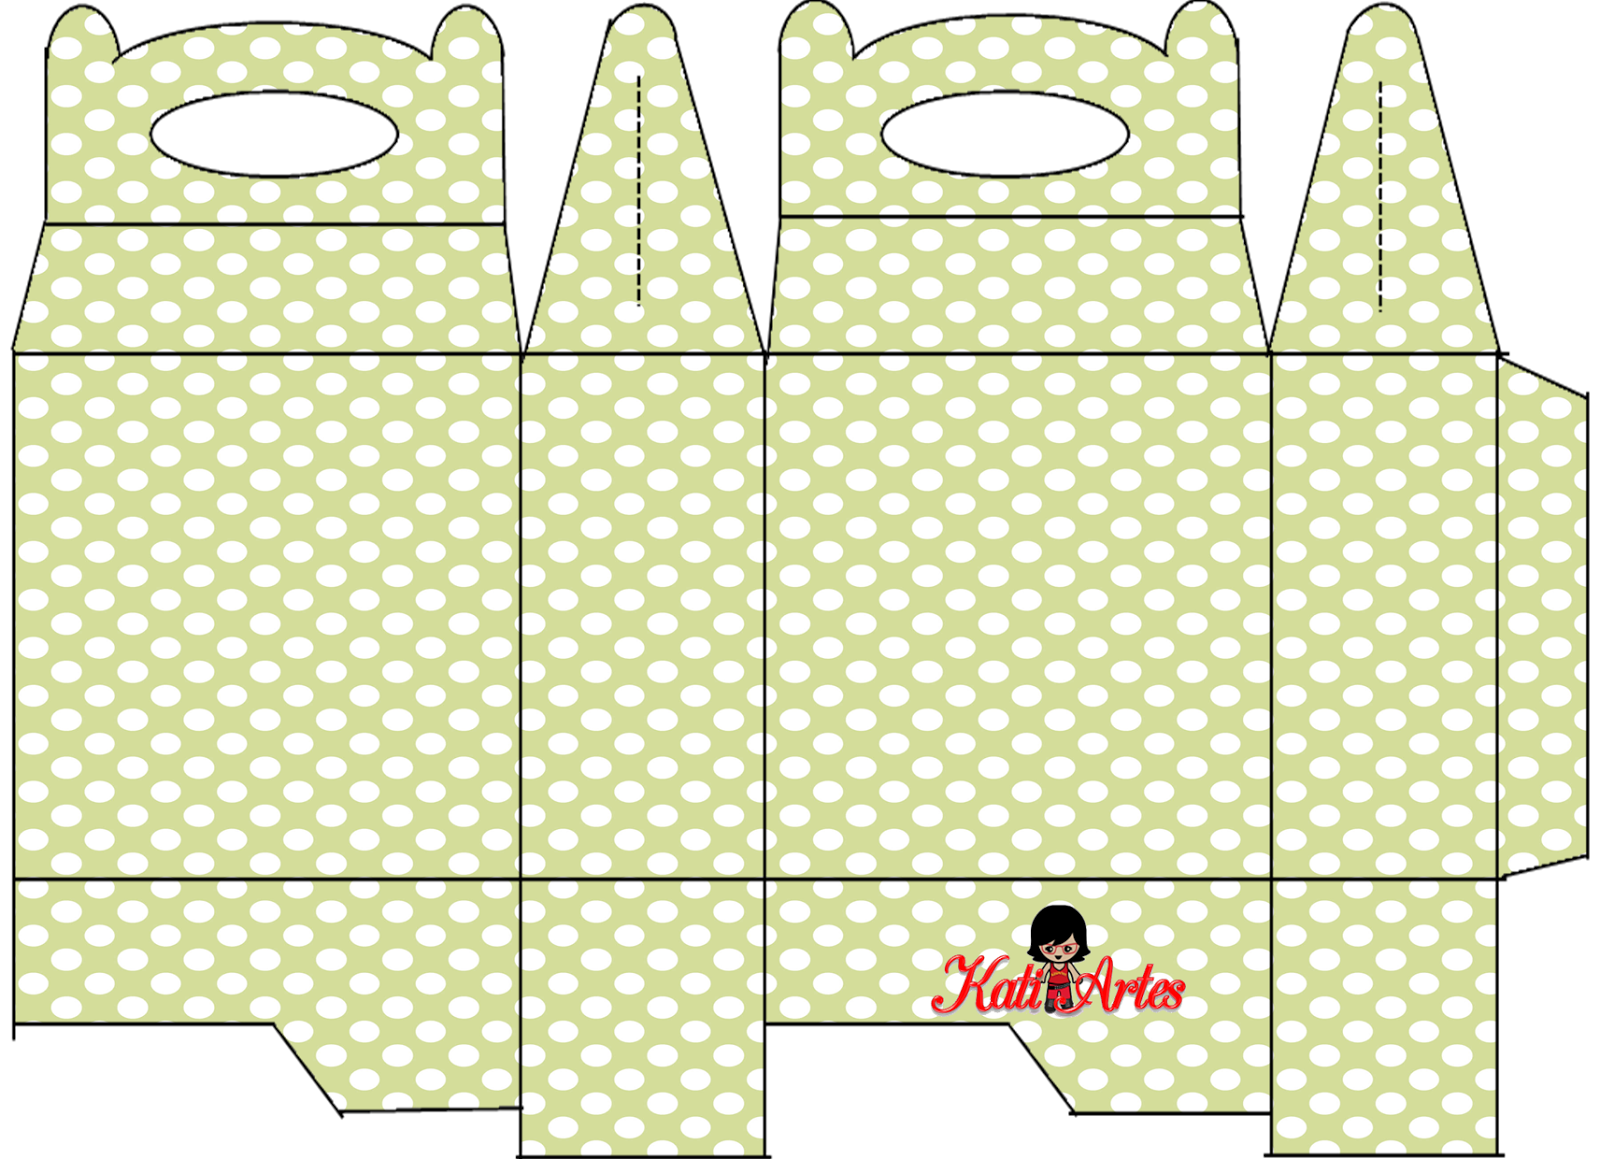 image about Dots and Boxes Printable identified as Polka Dots: Absolutely free Printable Lunch Box. - Oh My Fiesta! inside of english